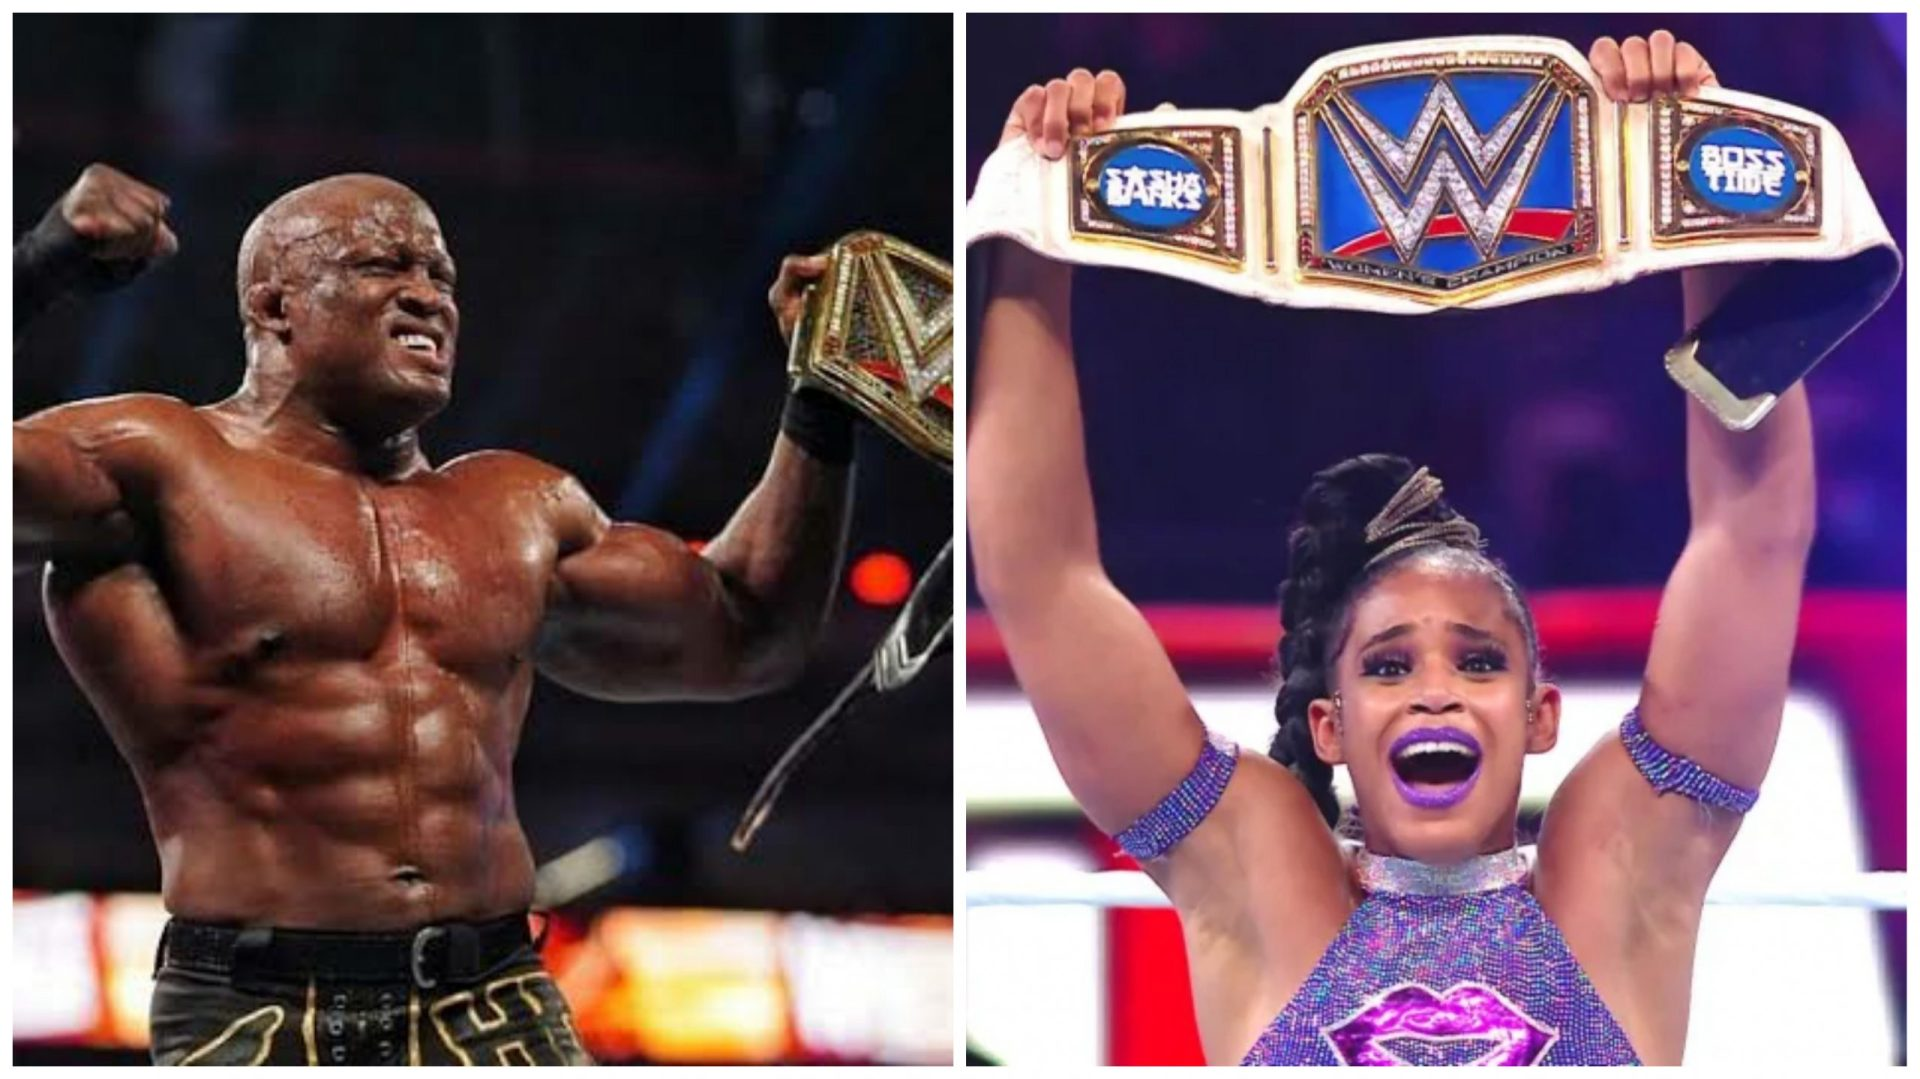 WrestleMania 37 Night 1 results: Lashley, Belair victorious - THE SPORTS ROOM